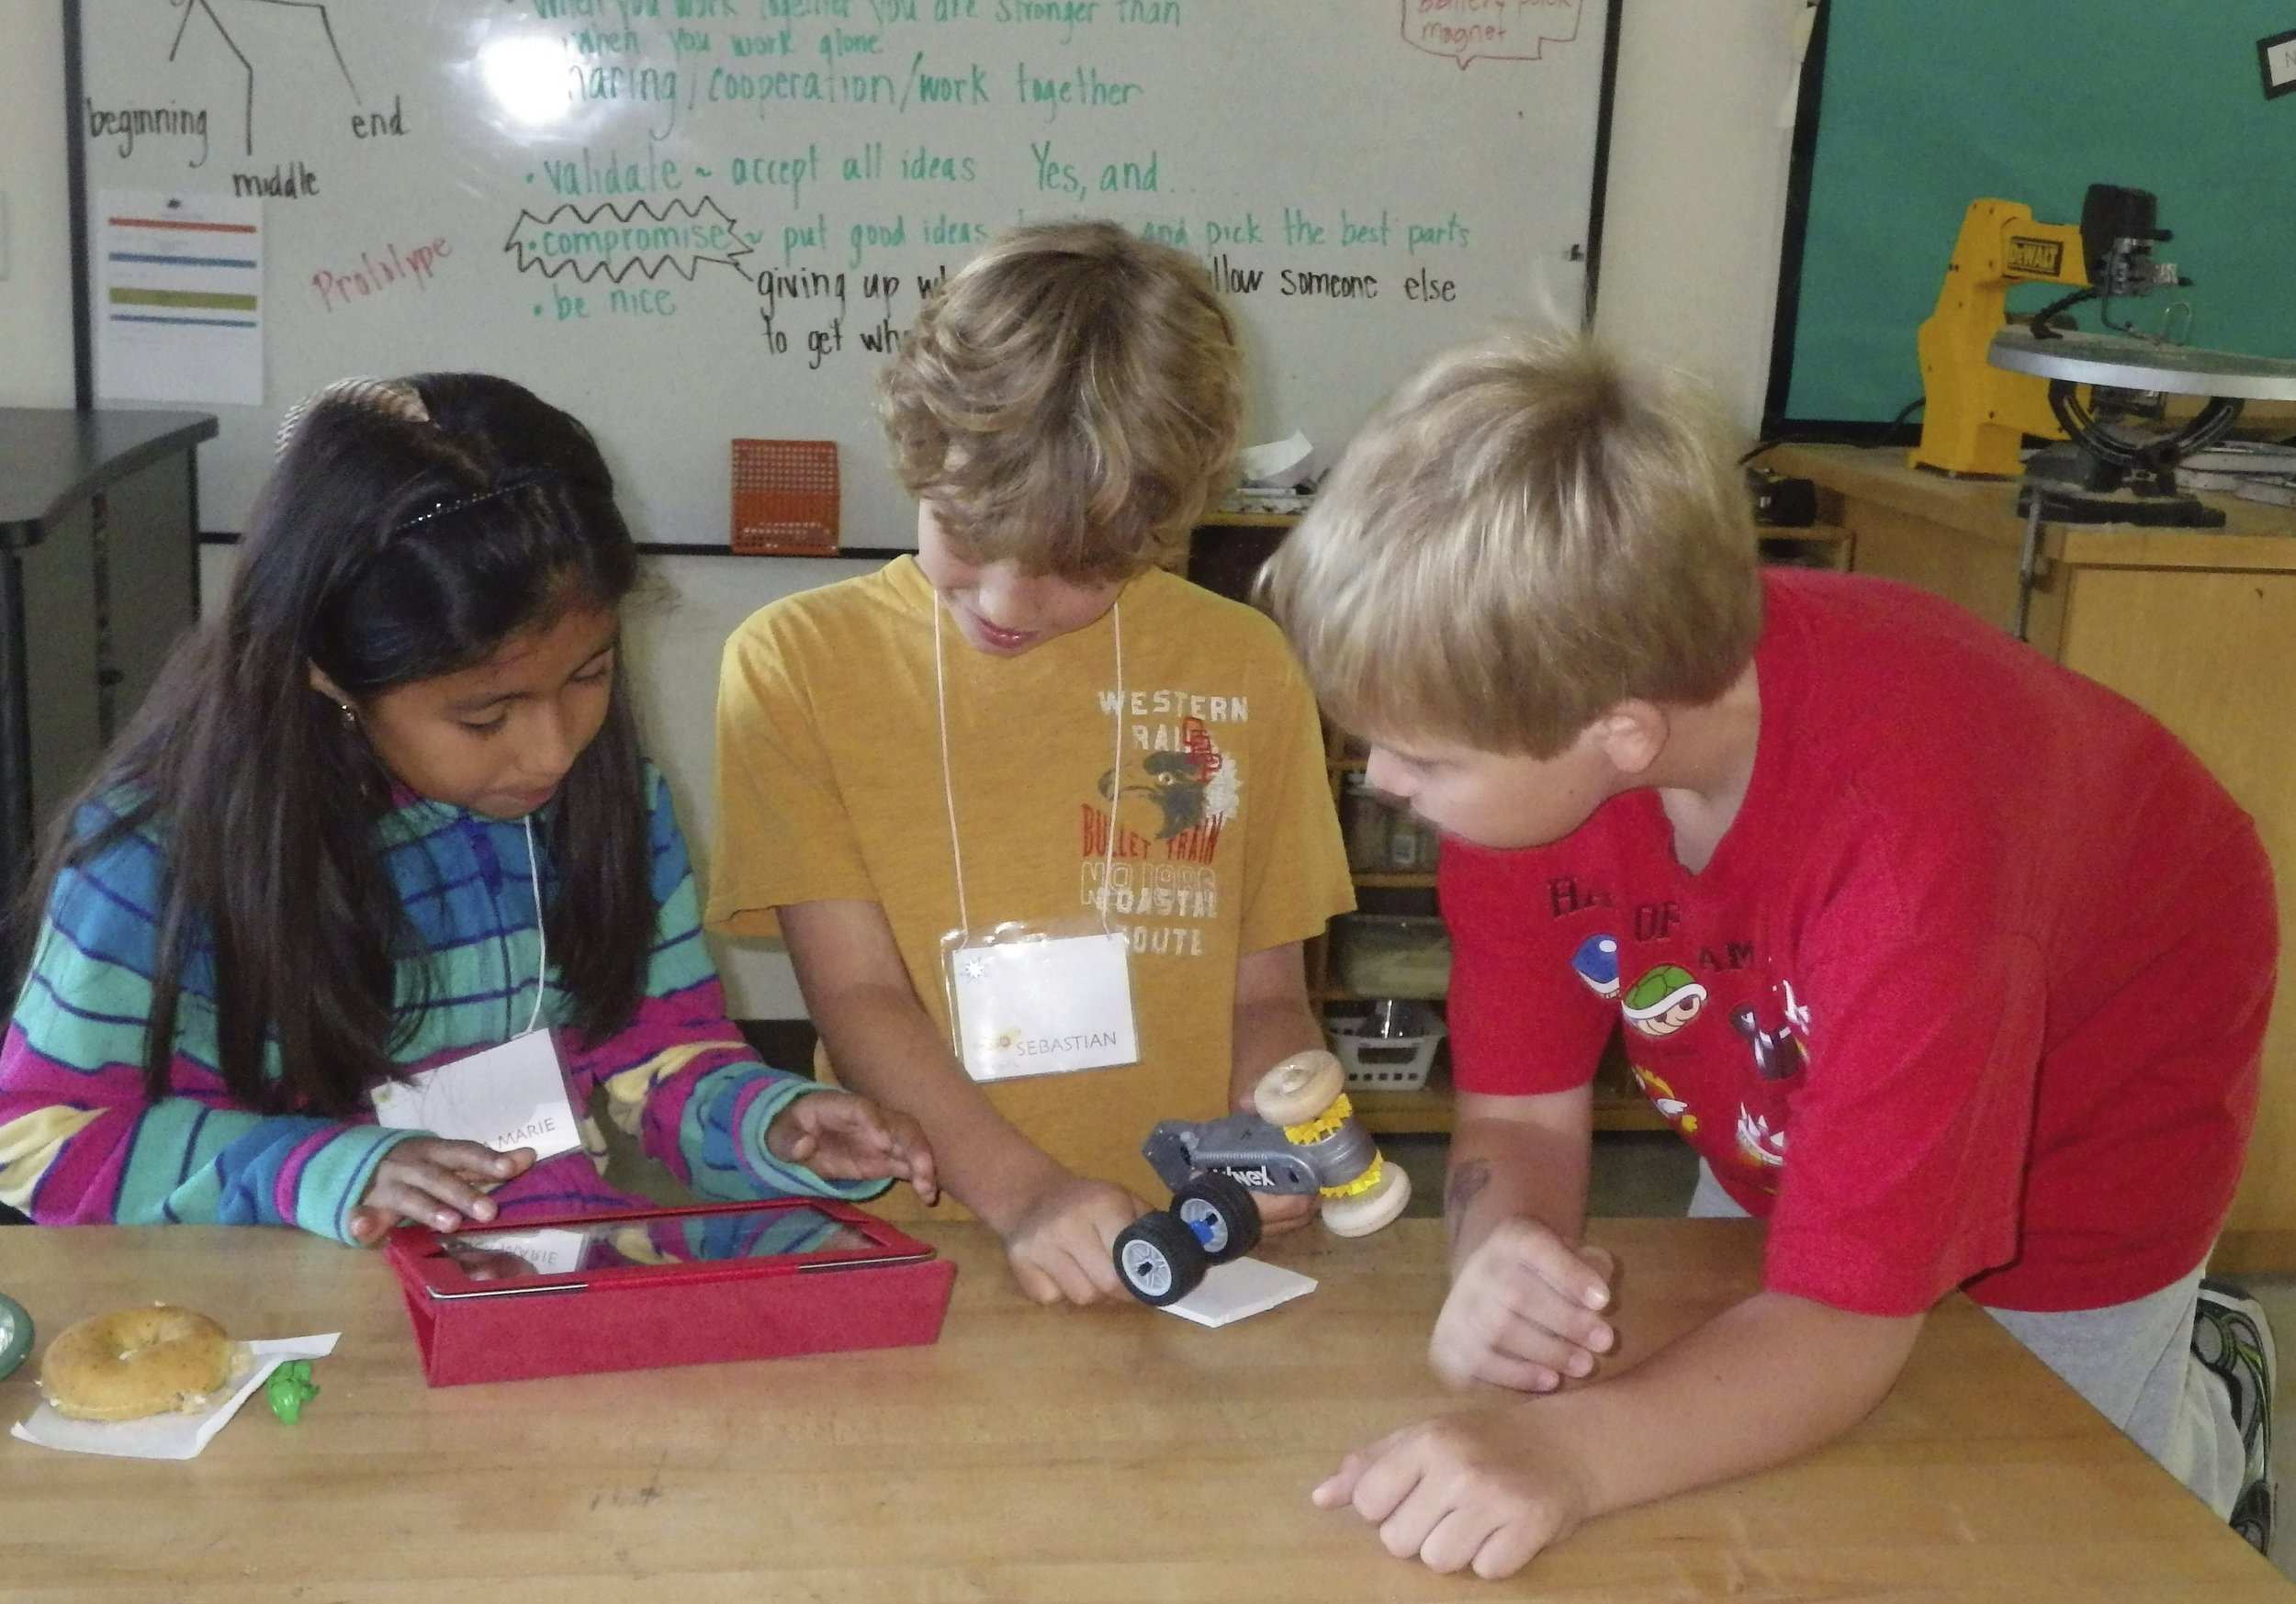 Students create presentations about their new classmates to share later with the whole class.